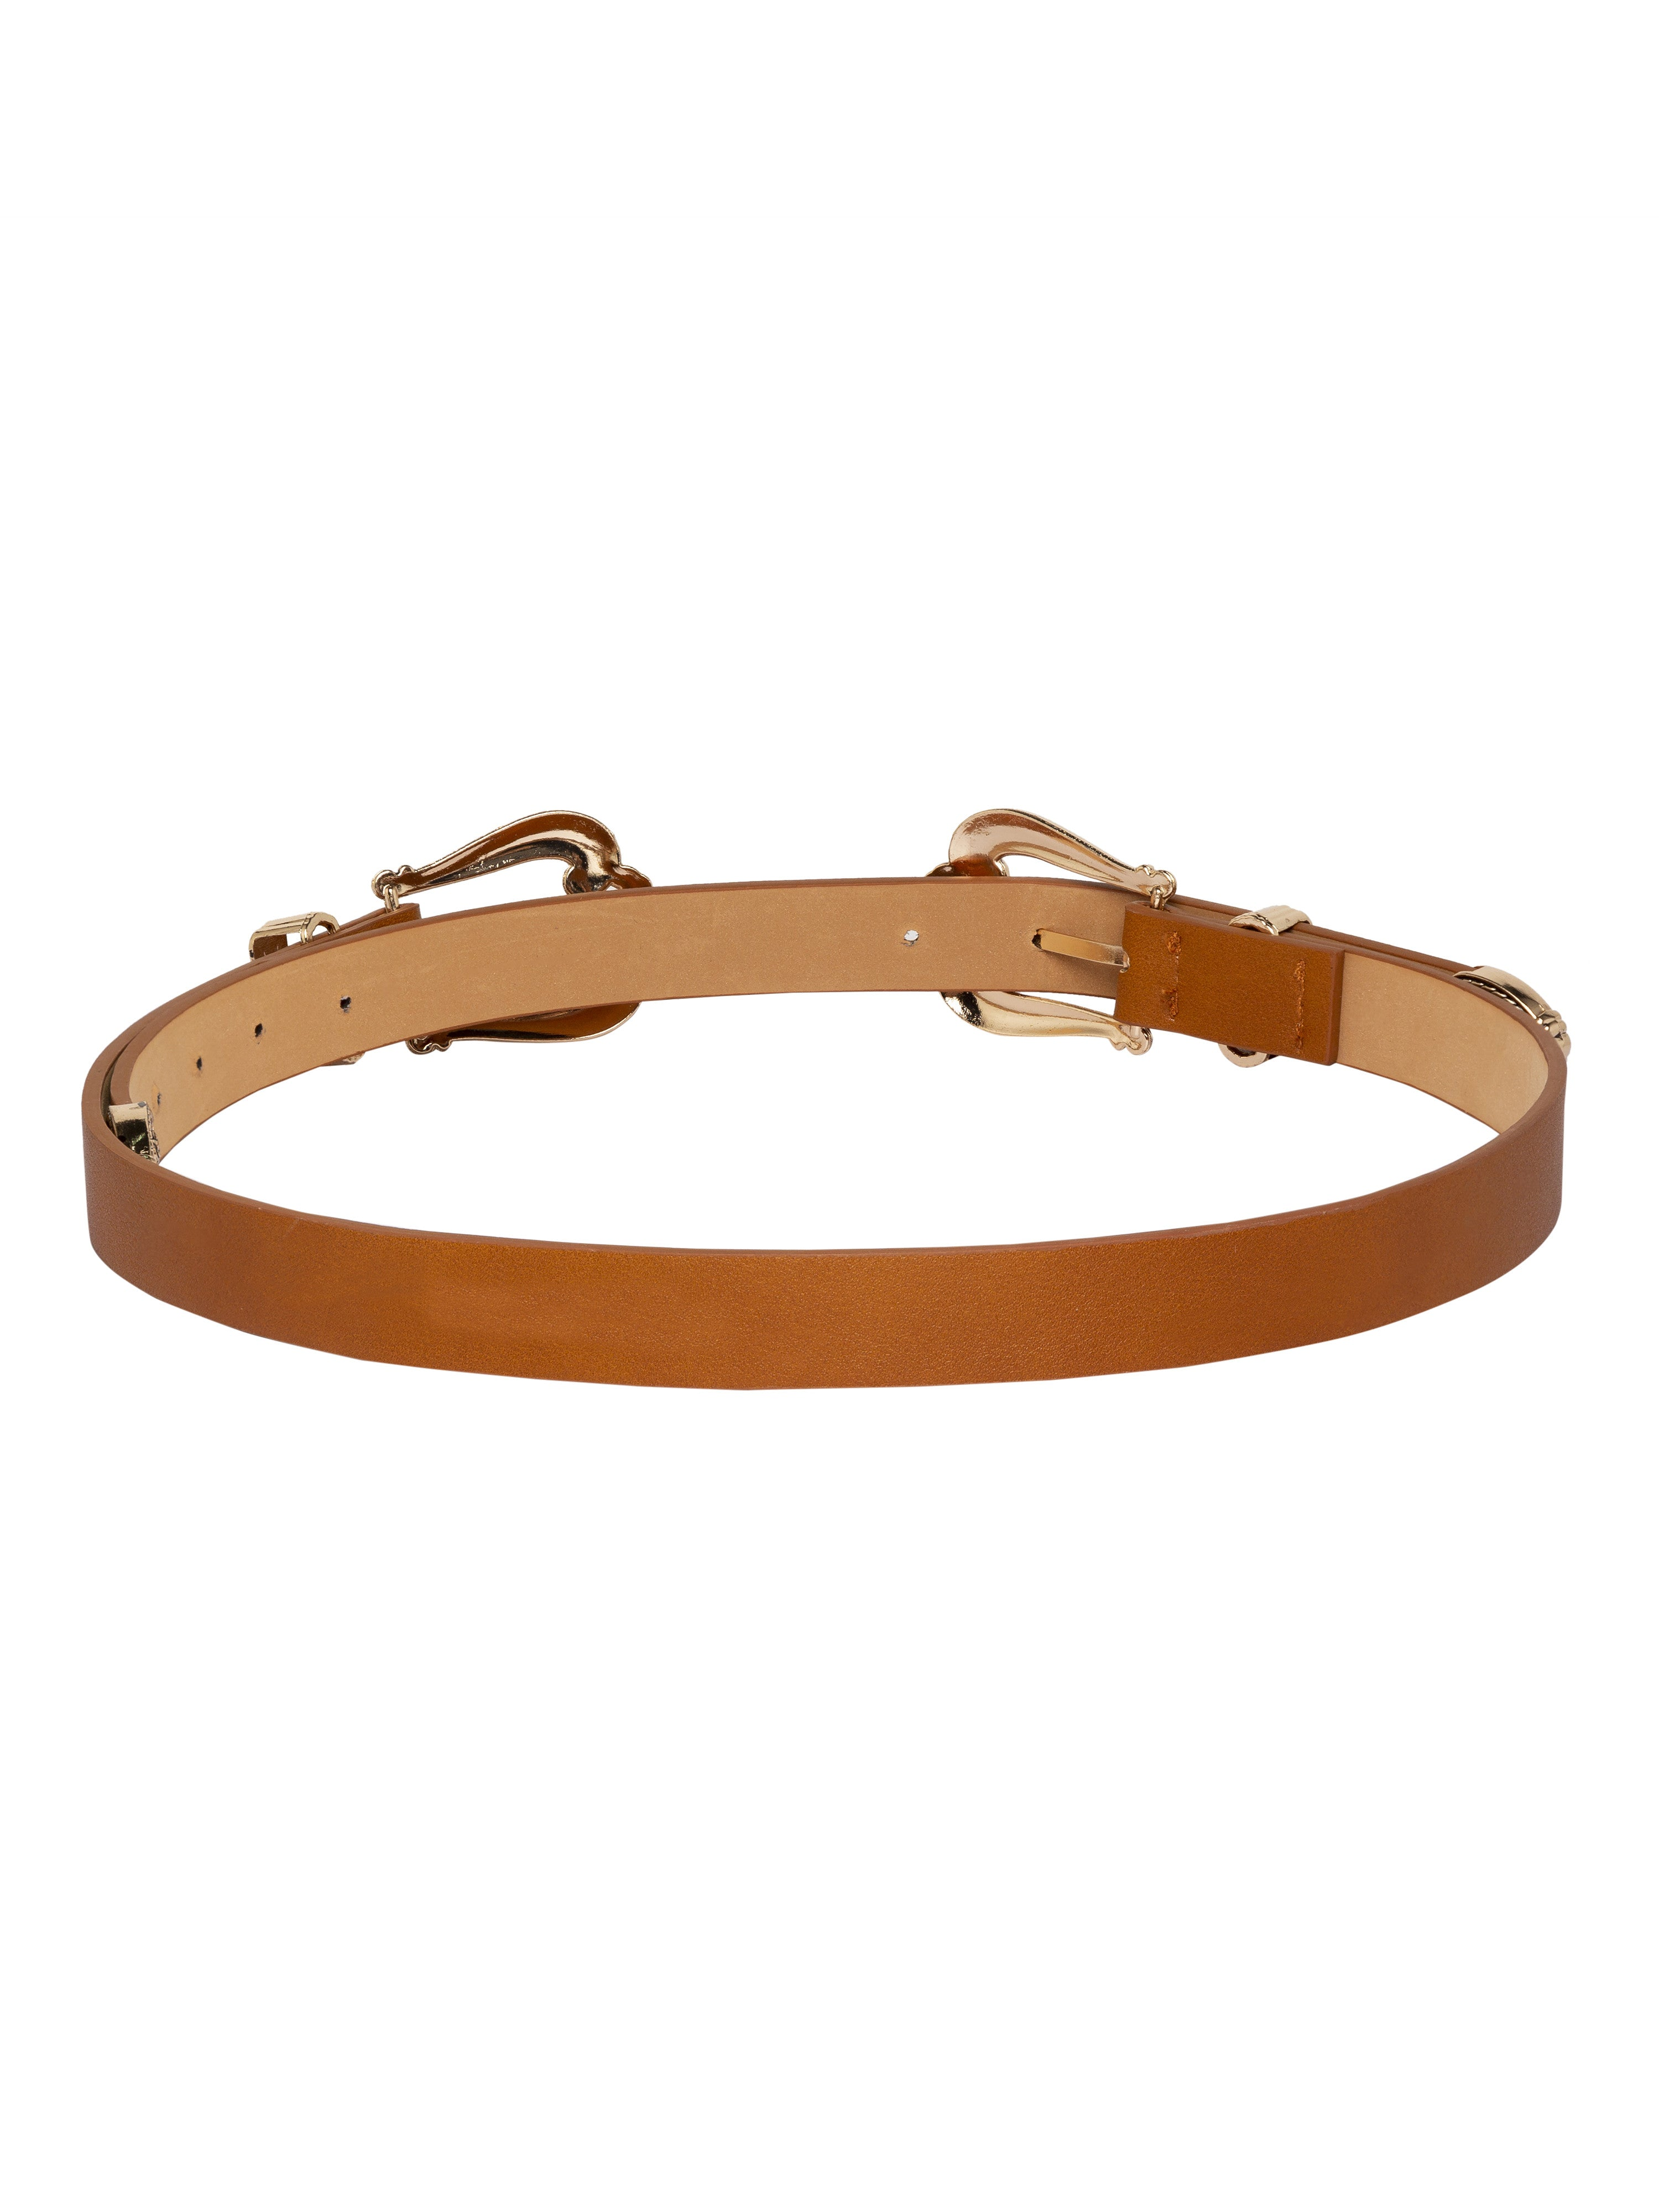 Ornate Buckle Tan Belt-2